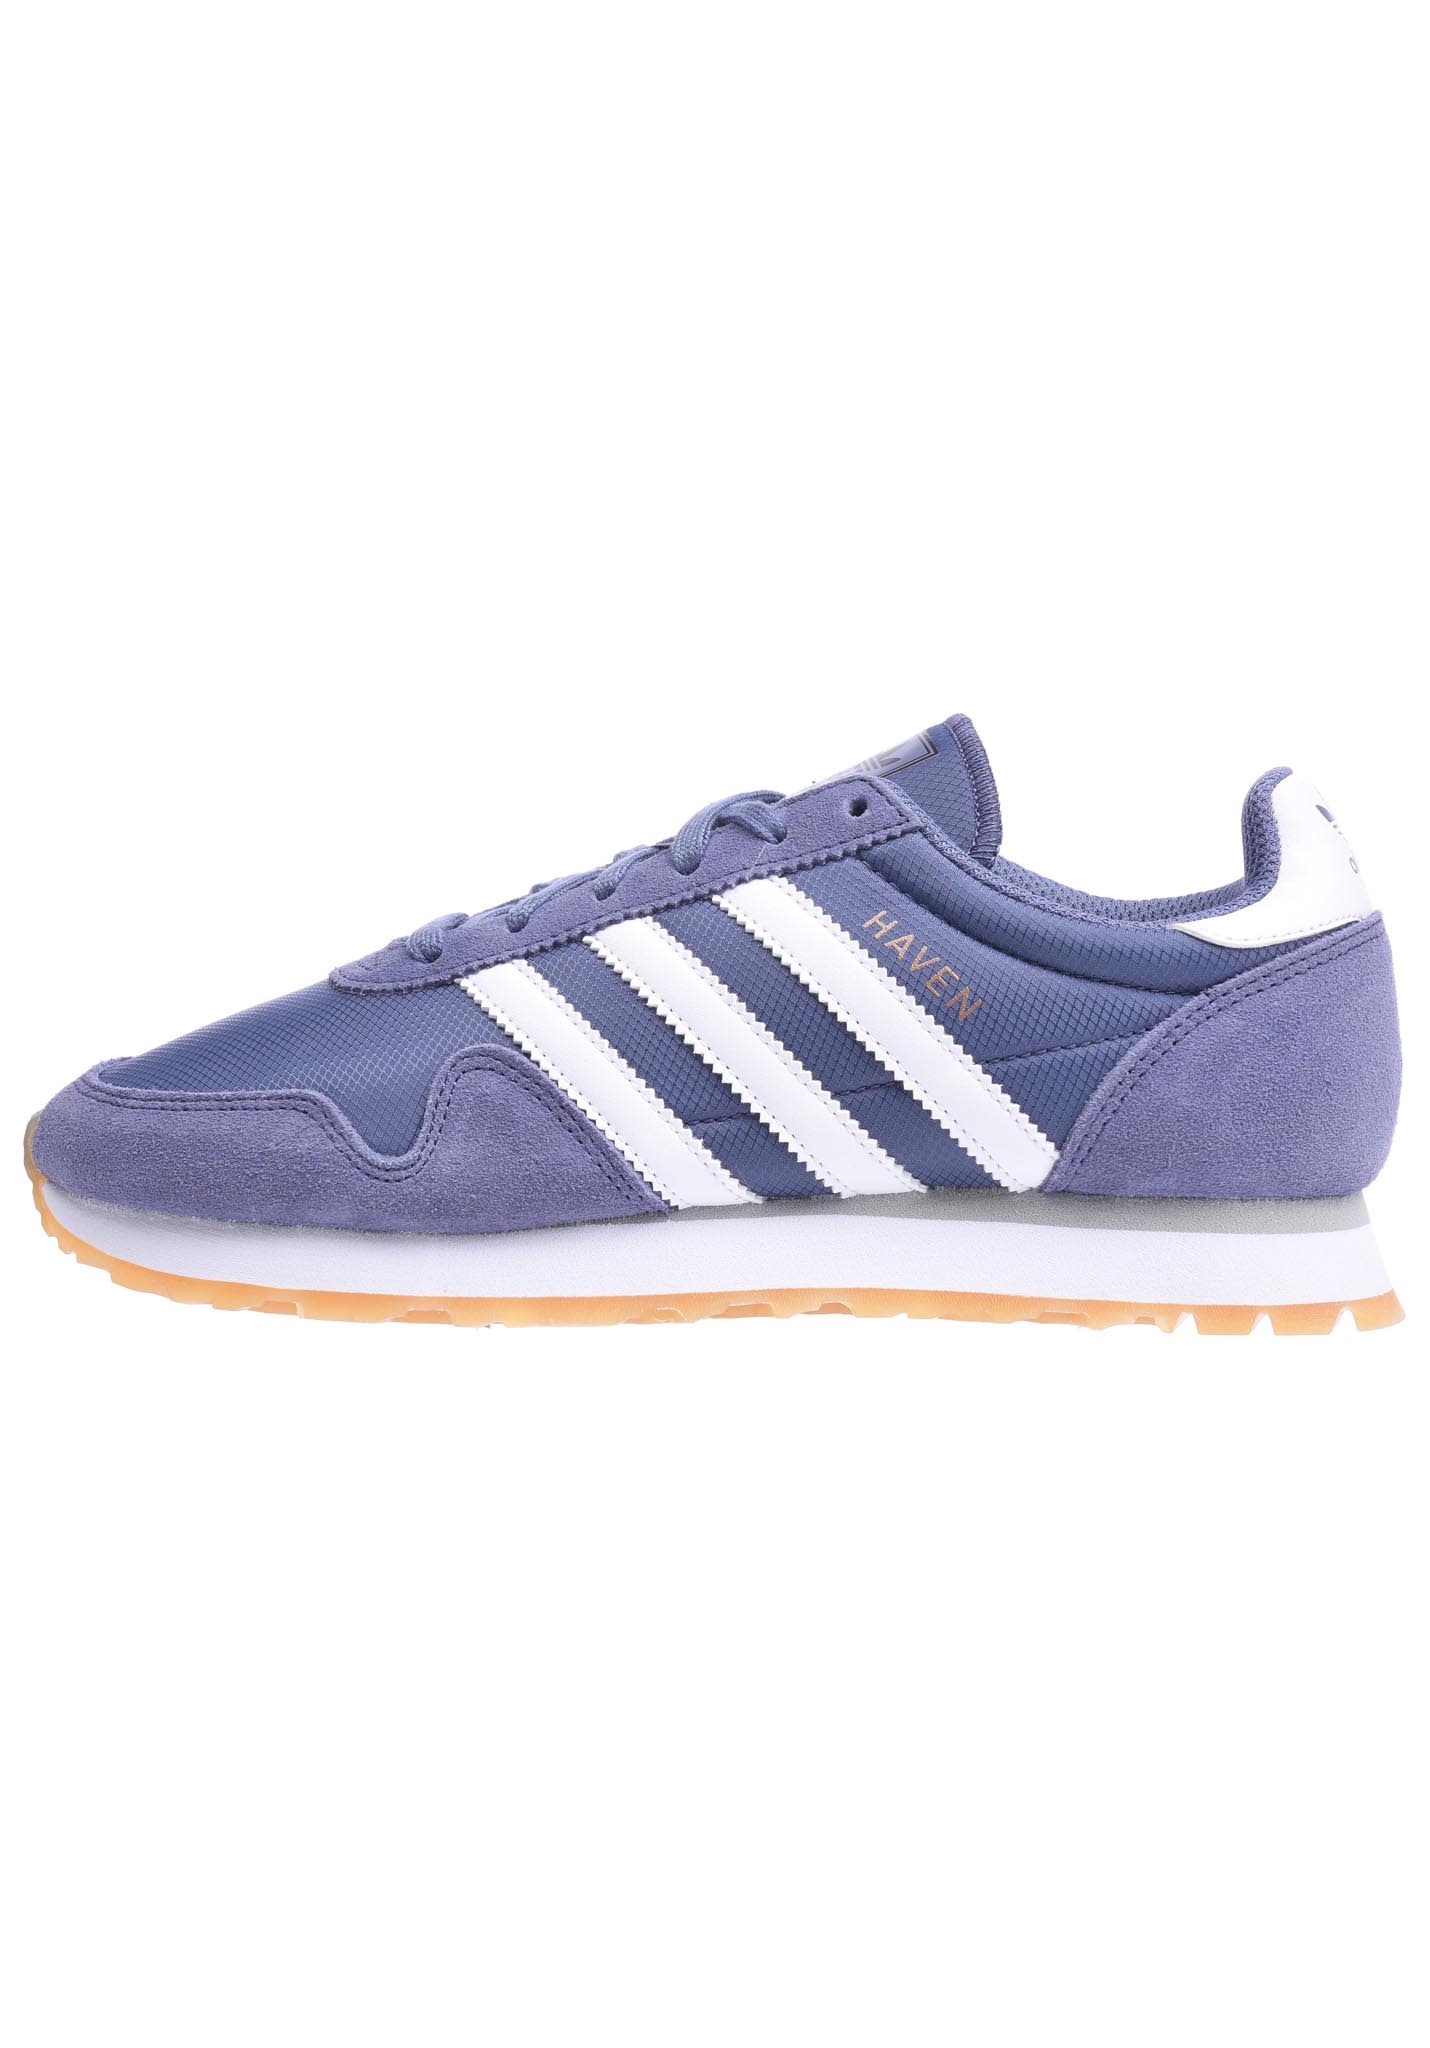 1fc780a8595 ADIDAS ORIGINALS Haven - Sneakers voor Dames - Paars - Planet Sports